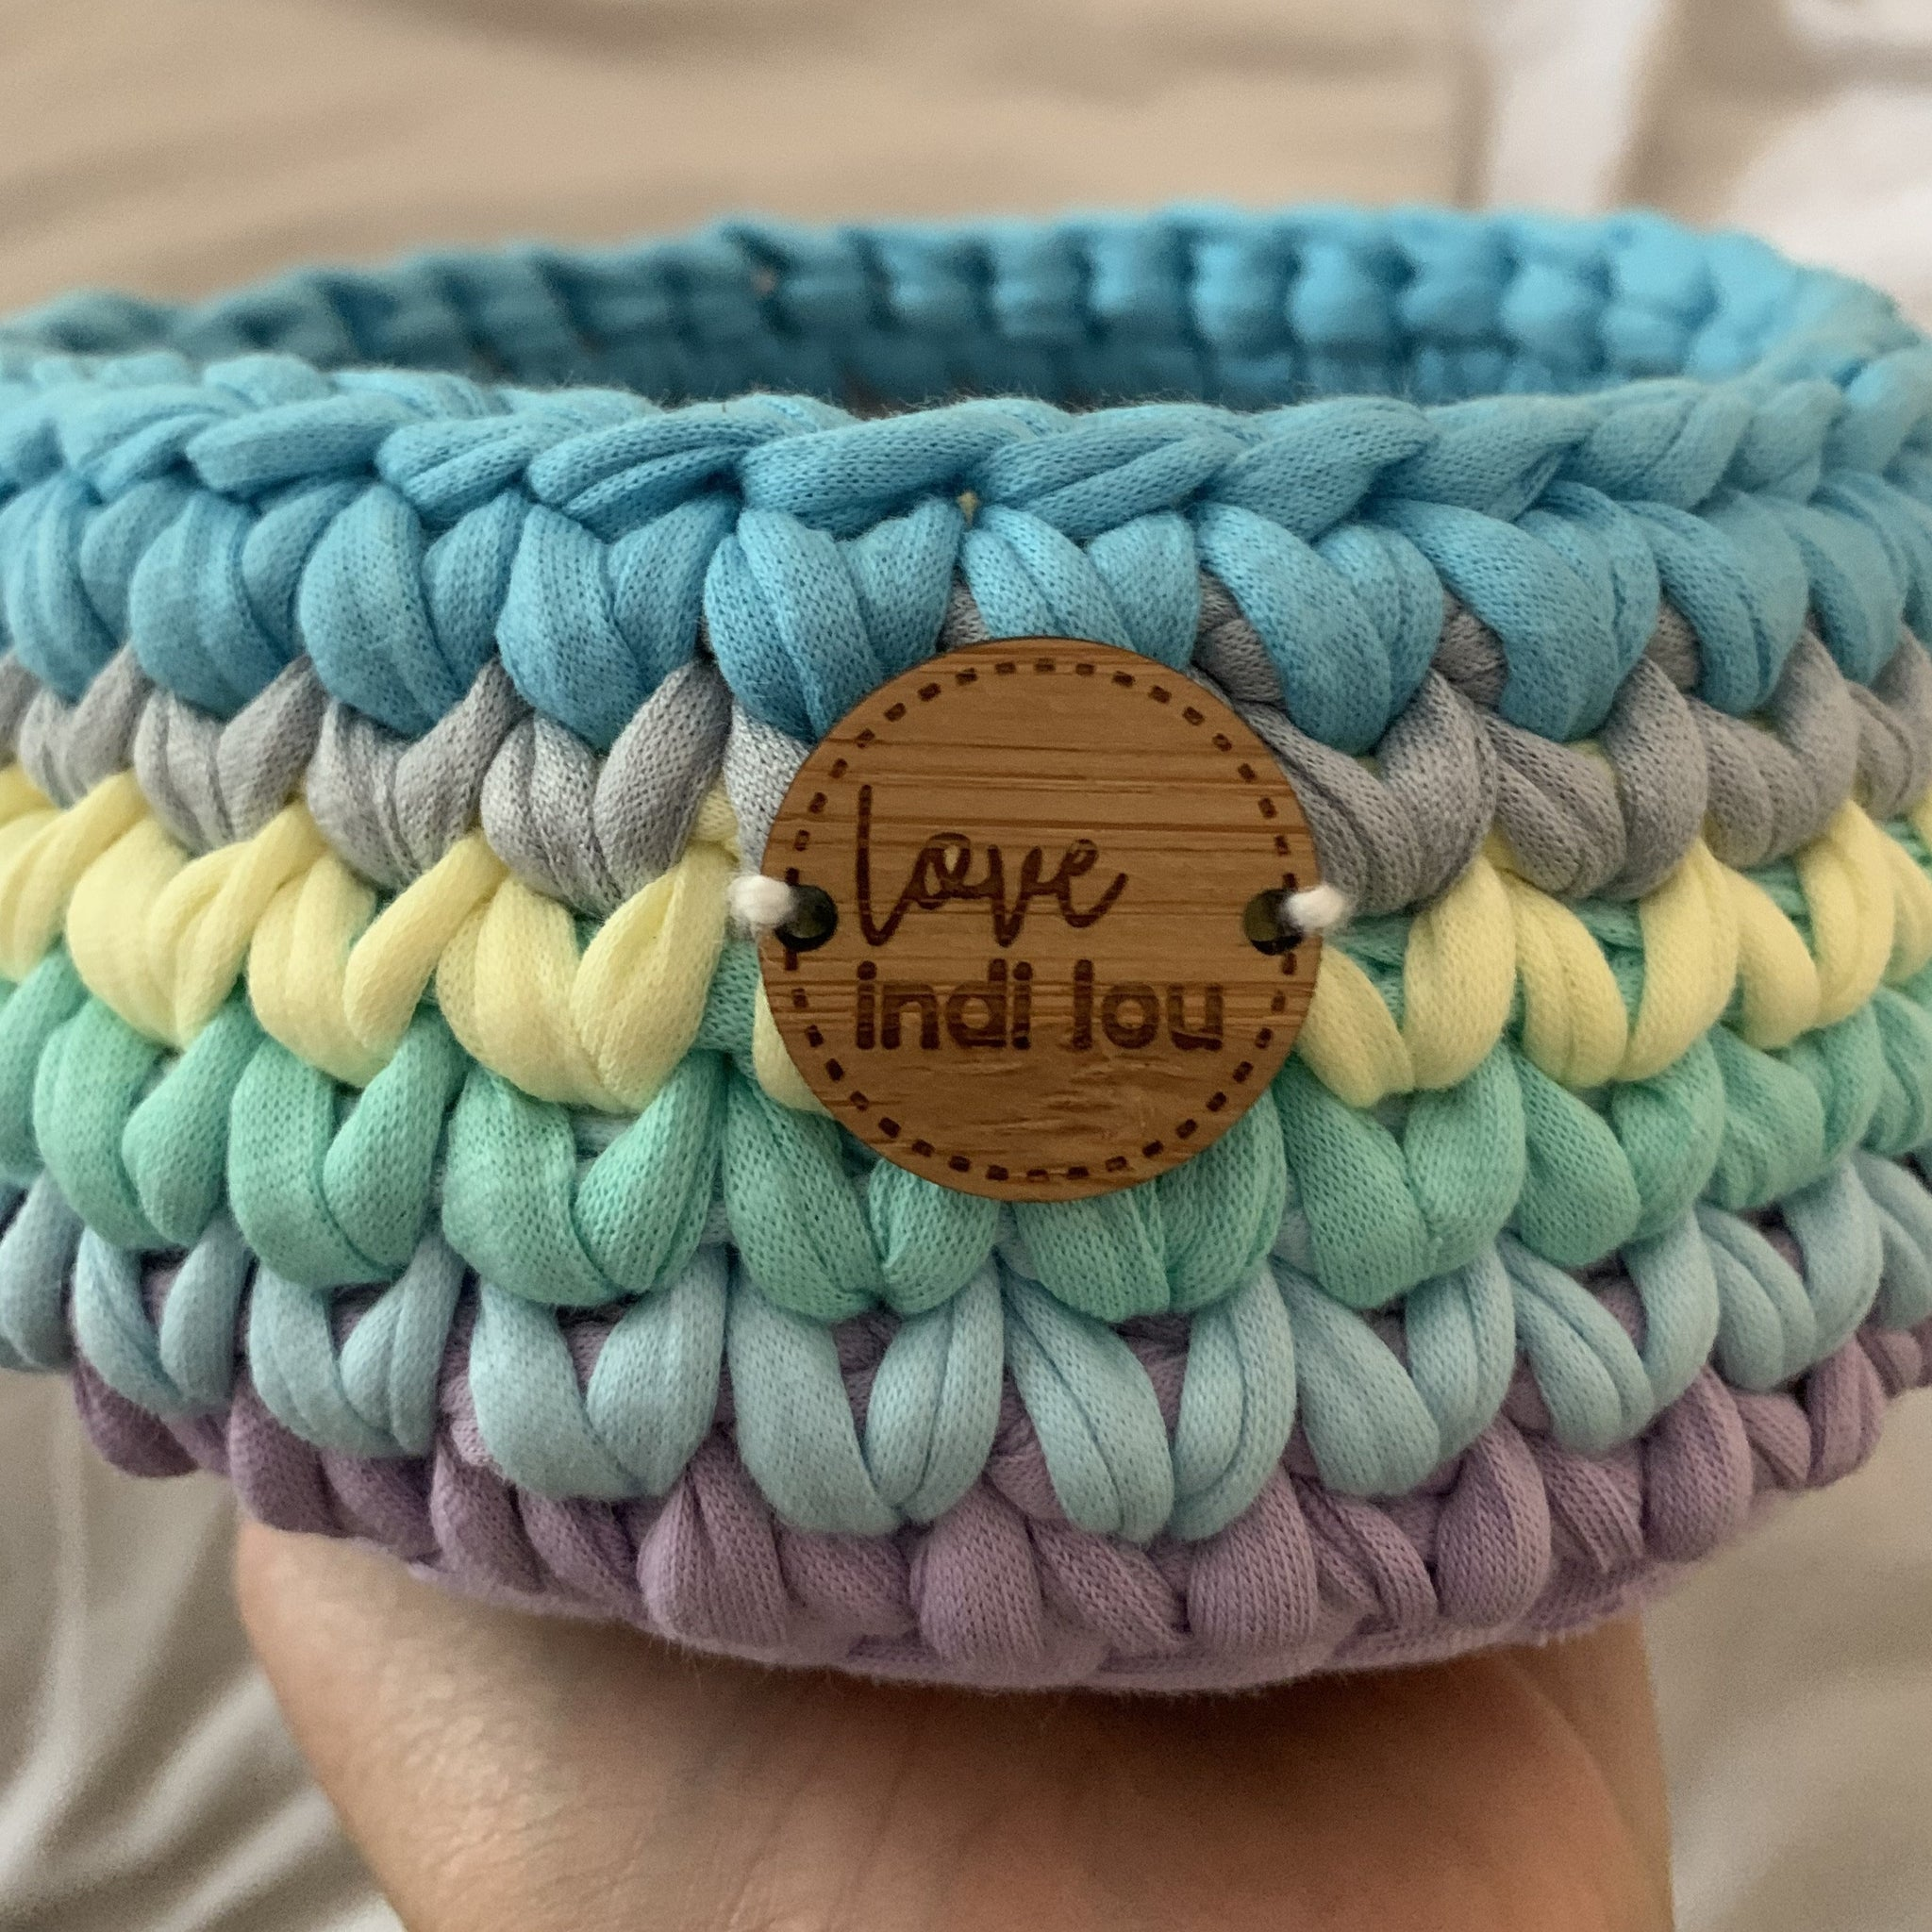 Crochet Storage Basket - Rainbow Blues